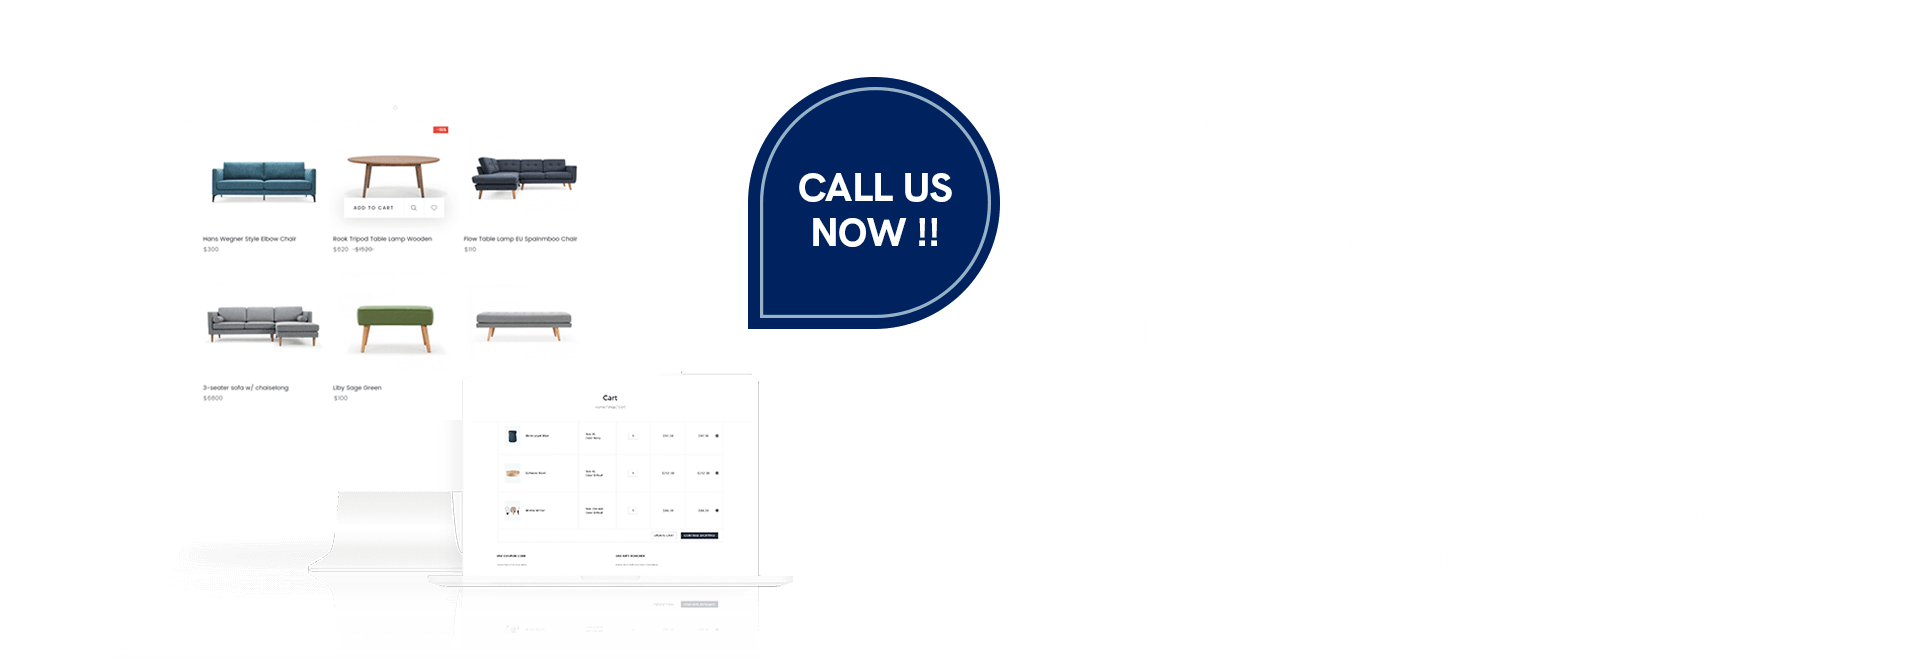 eCommerce Web Design & Development - Up to 98% Grant Available 4